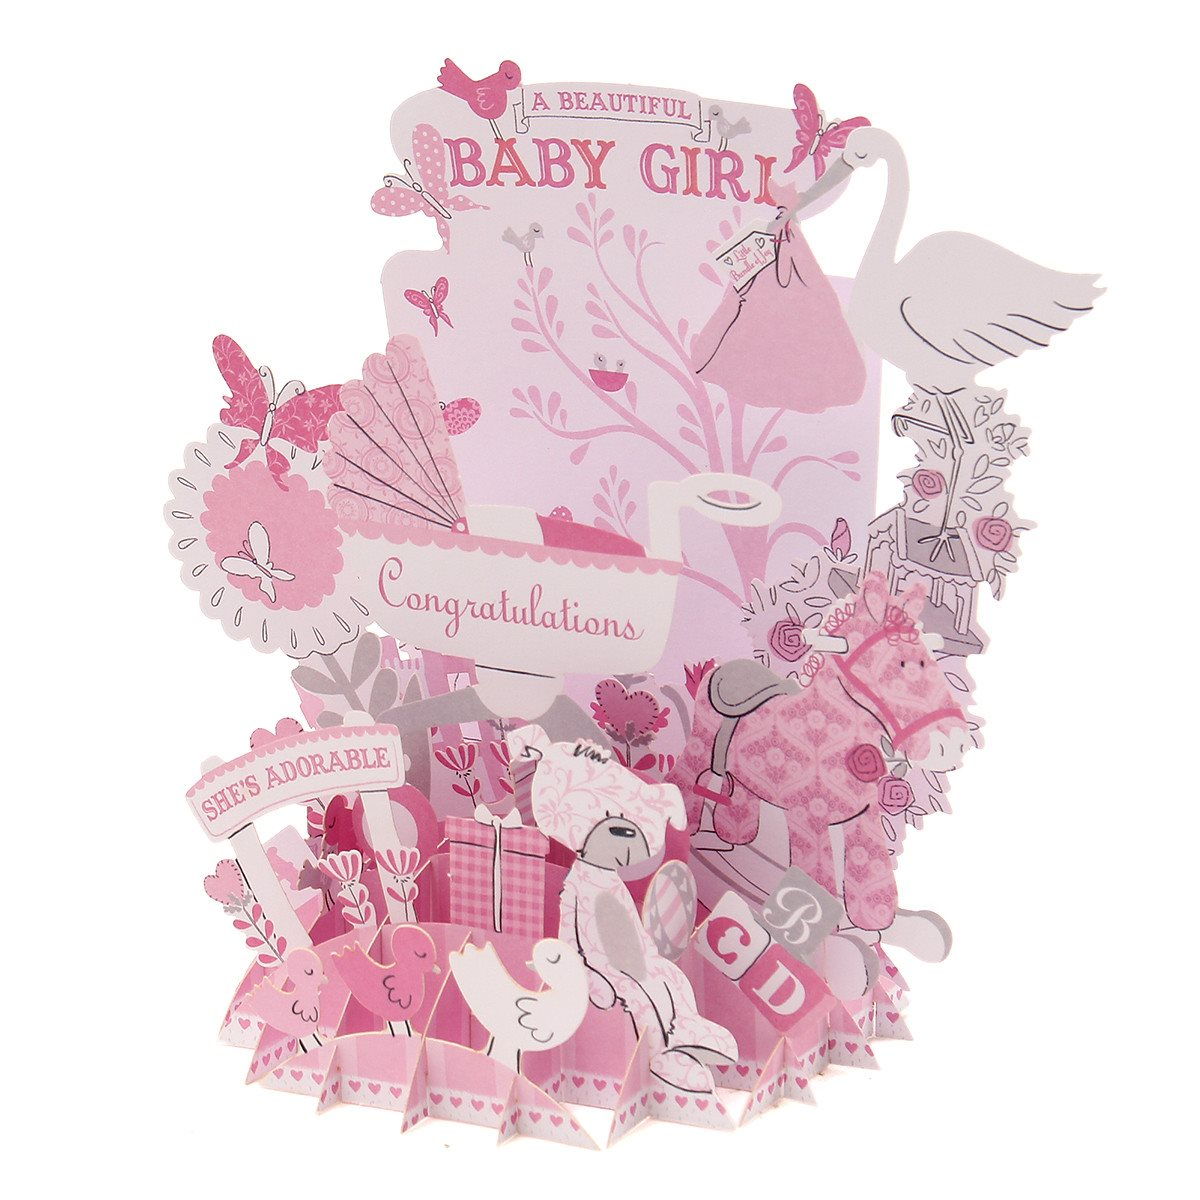 Paper pop up greeting card baby girl birthday wedding invitation paper pop up greeting card baby girl birthday wedding invitation card handmade gift events party supplies favors crafts supplies in cards invitations from kristyandbryce Images